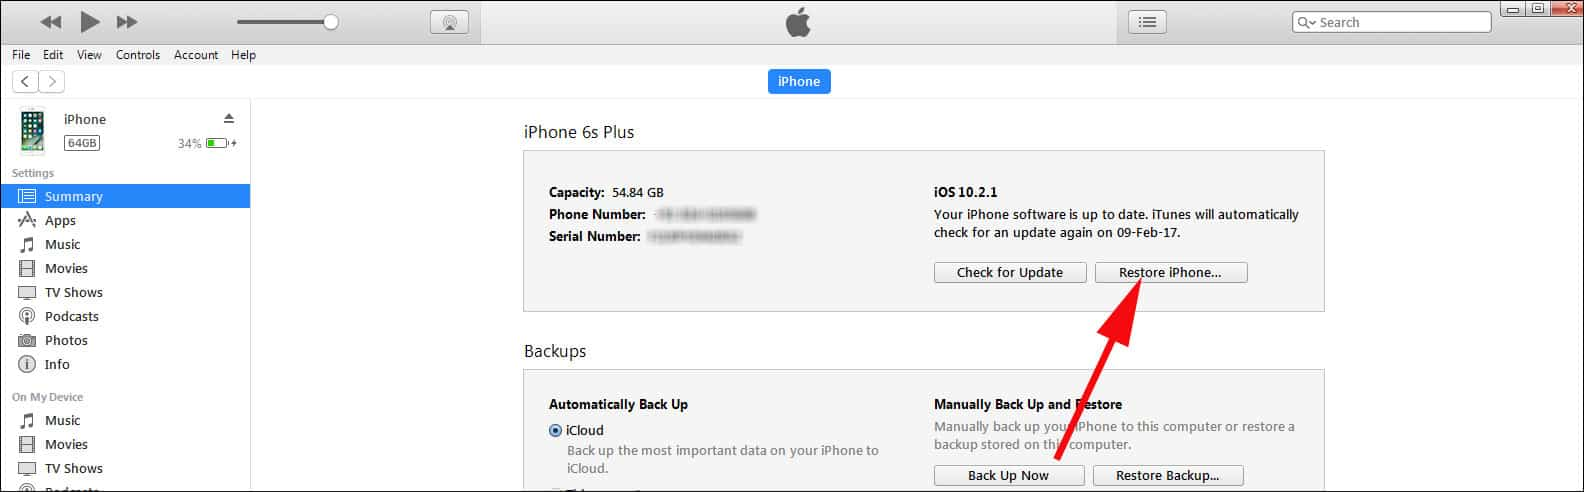 Sync your iPhone with itunes and tap on Restore option